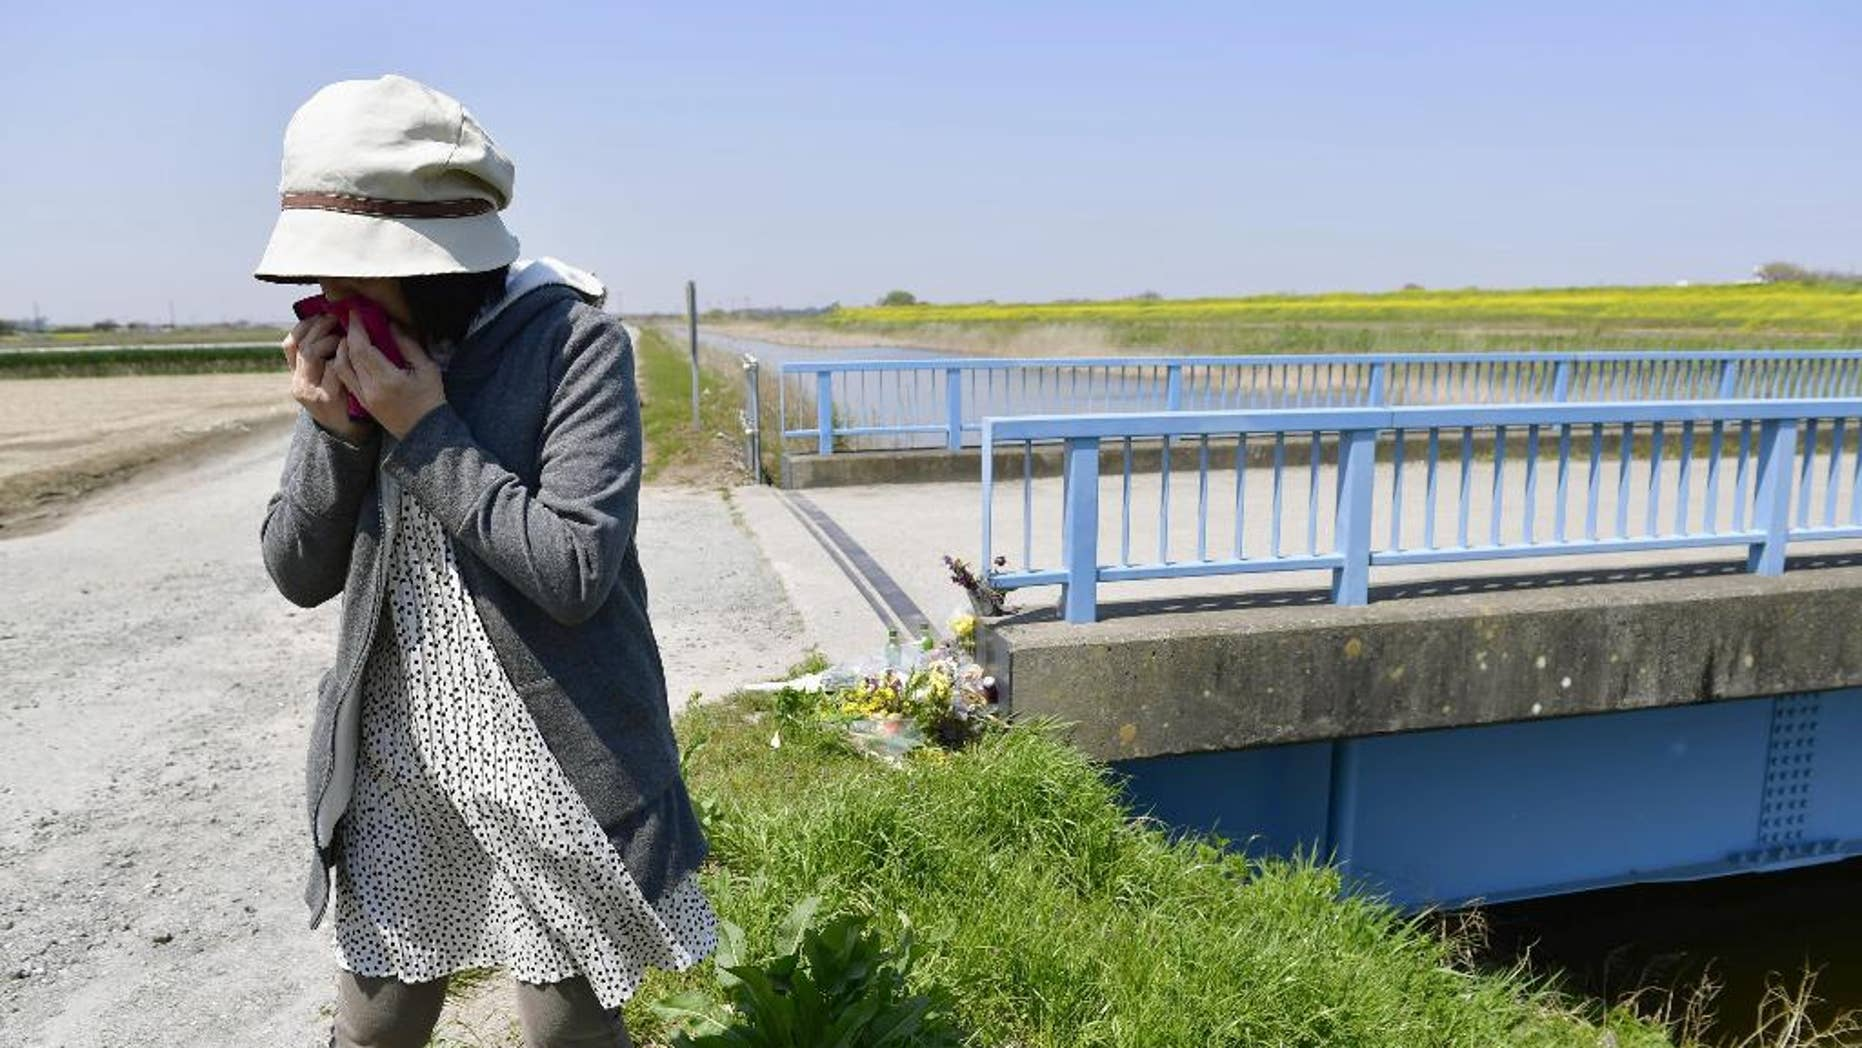 A woman sobs after offering flowers where a 9-year-old Vietnamese girl was found dead in Abiko, near Tokyo, Friday, April 14, 2017. Police have arrested a Japanese man in connection with the girl's death, weeks after her naked body was found near a trench. Chiba prefectural police said Friday they arrested 46-year-old real estate salesman Yasumasa Shibuya on suspicion he abandoned the girl's body. Japanese media say Shibuya headed a parents' association at the school the girl attended. (Ren Onuma/Kyodo News via AP)